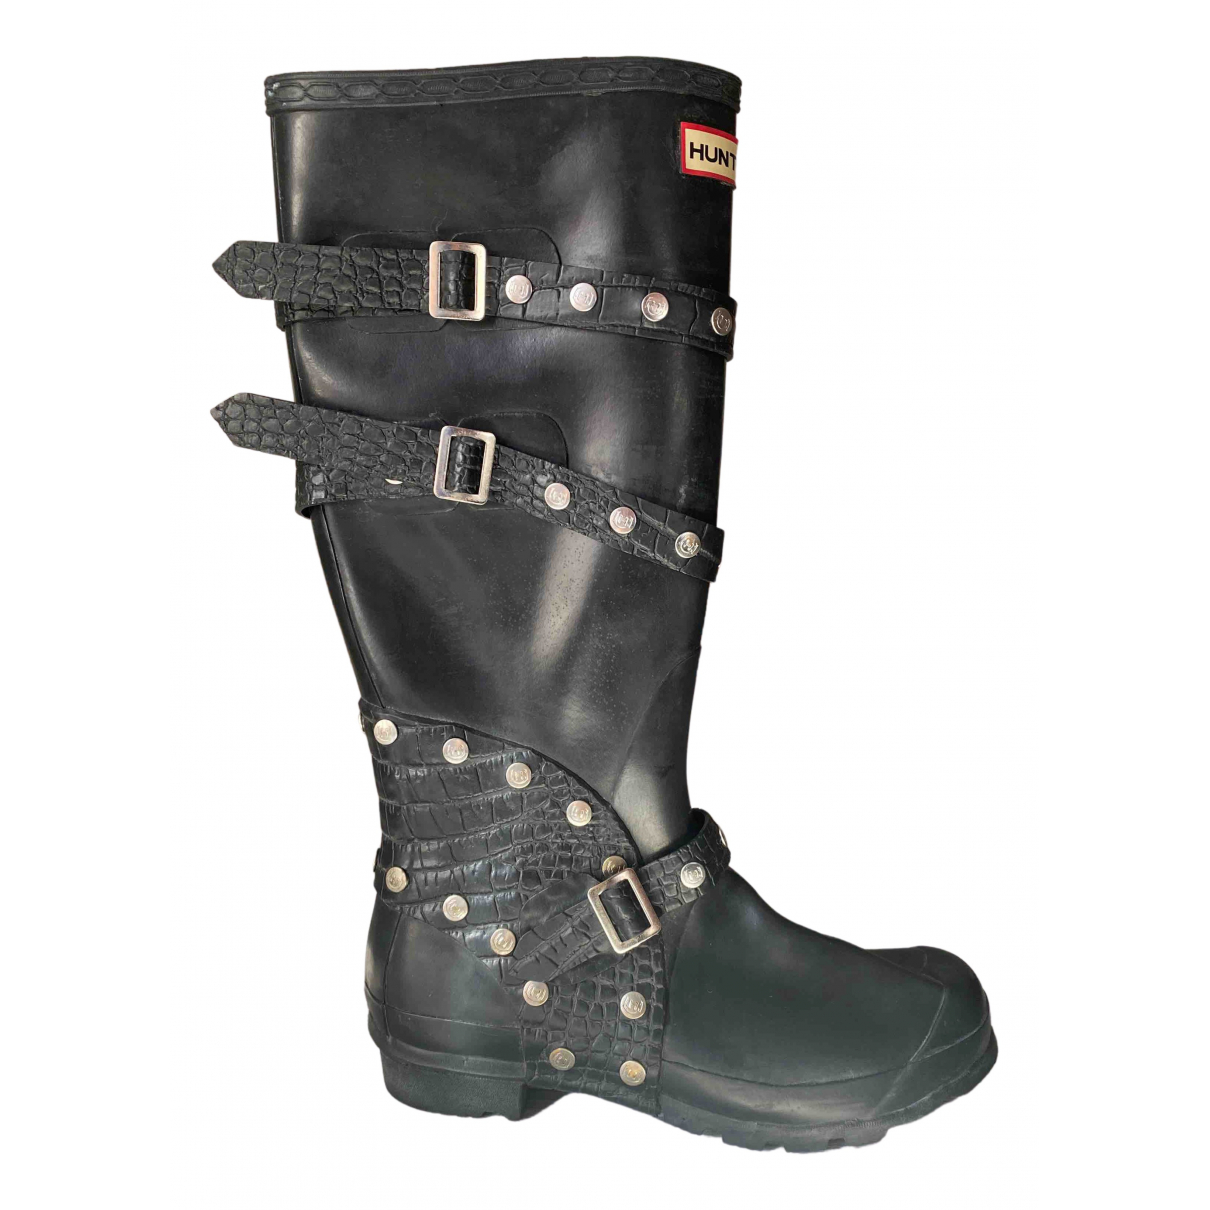 Hunter N Black Rubber Boots for Women 3 US